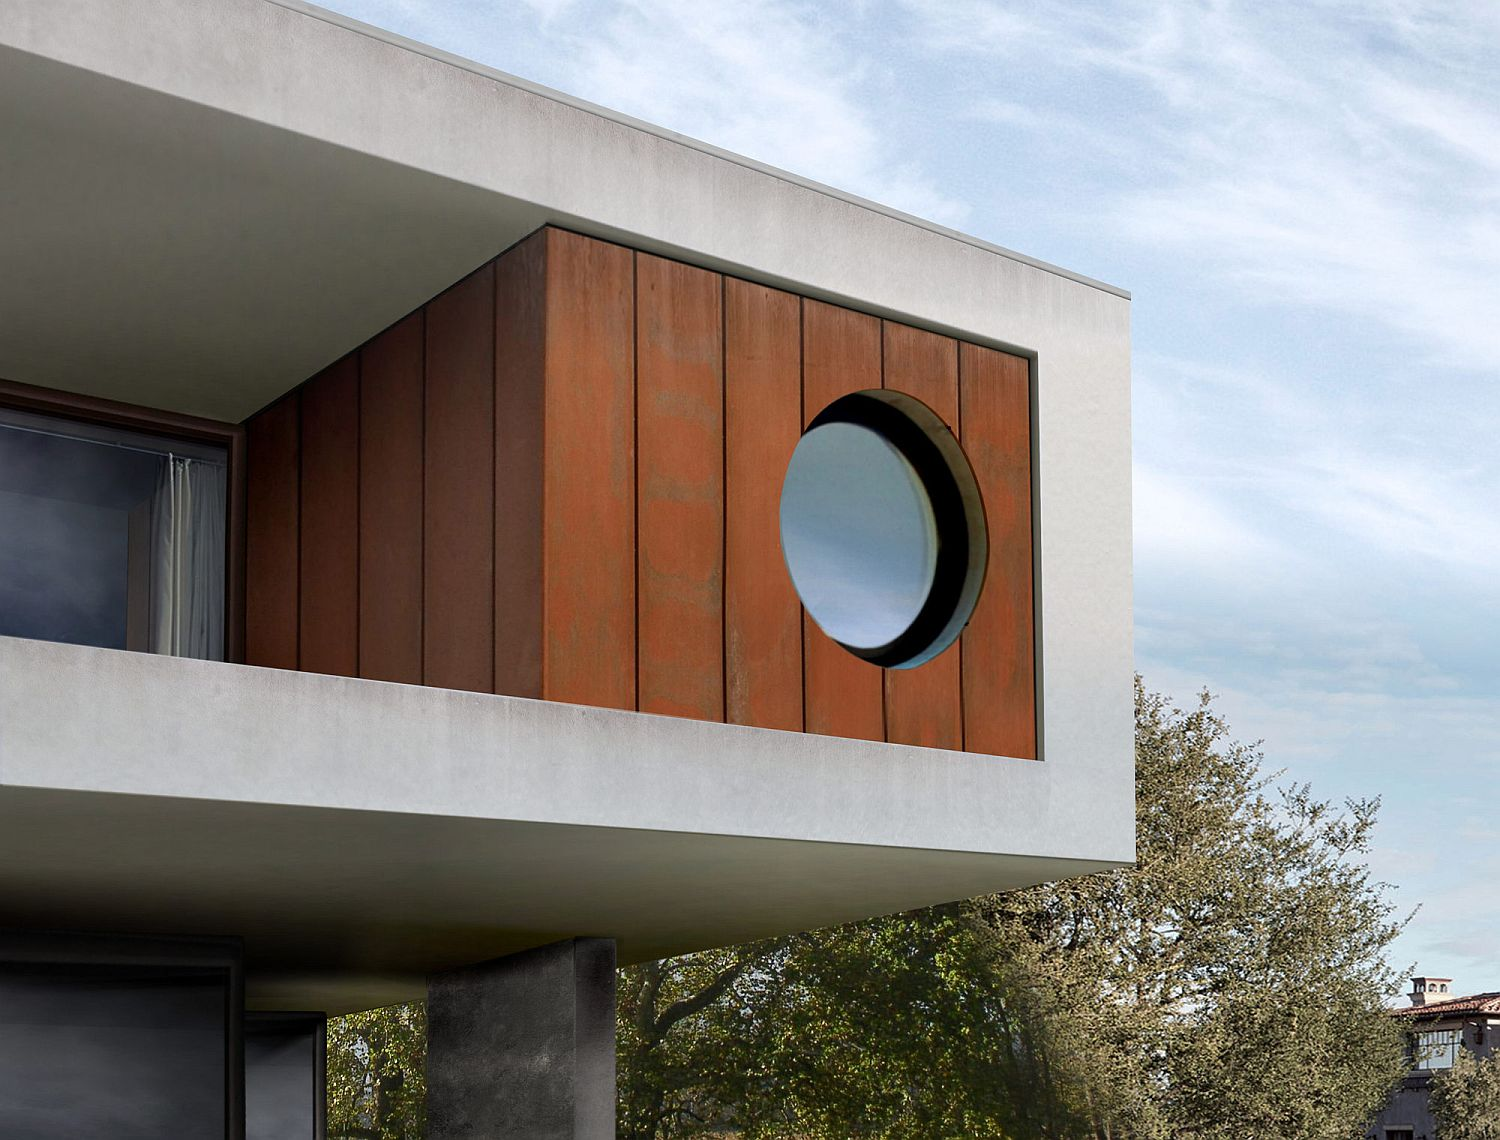 Rusted steel panels give the facade a unique look